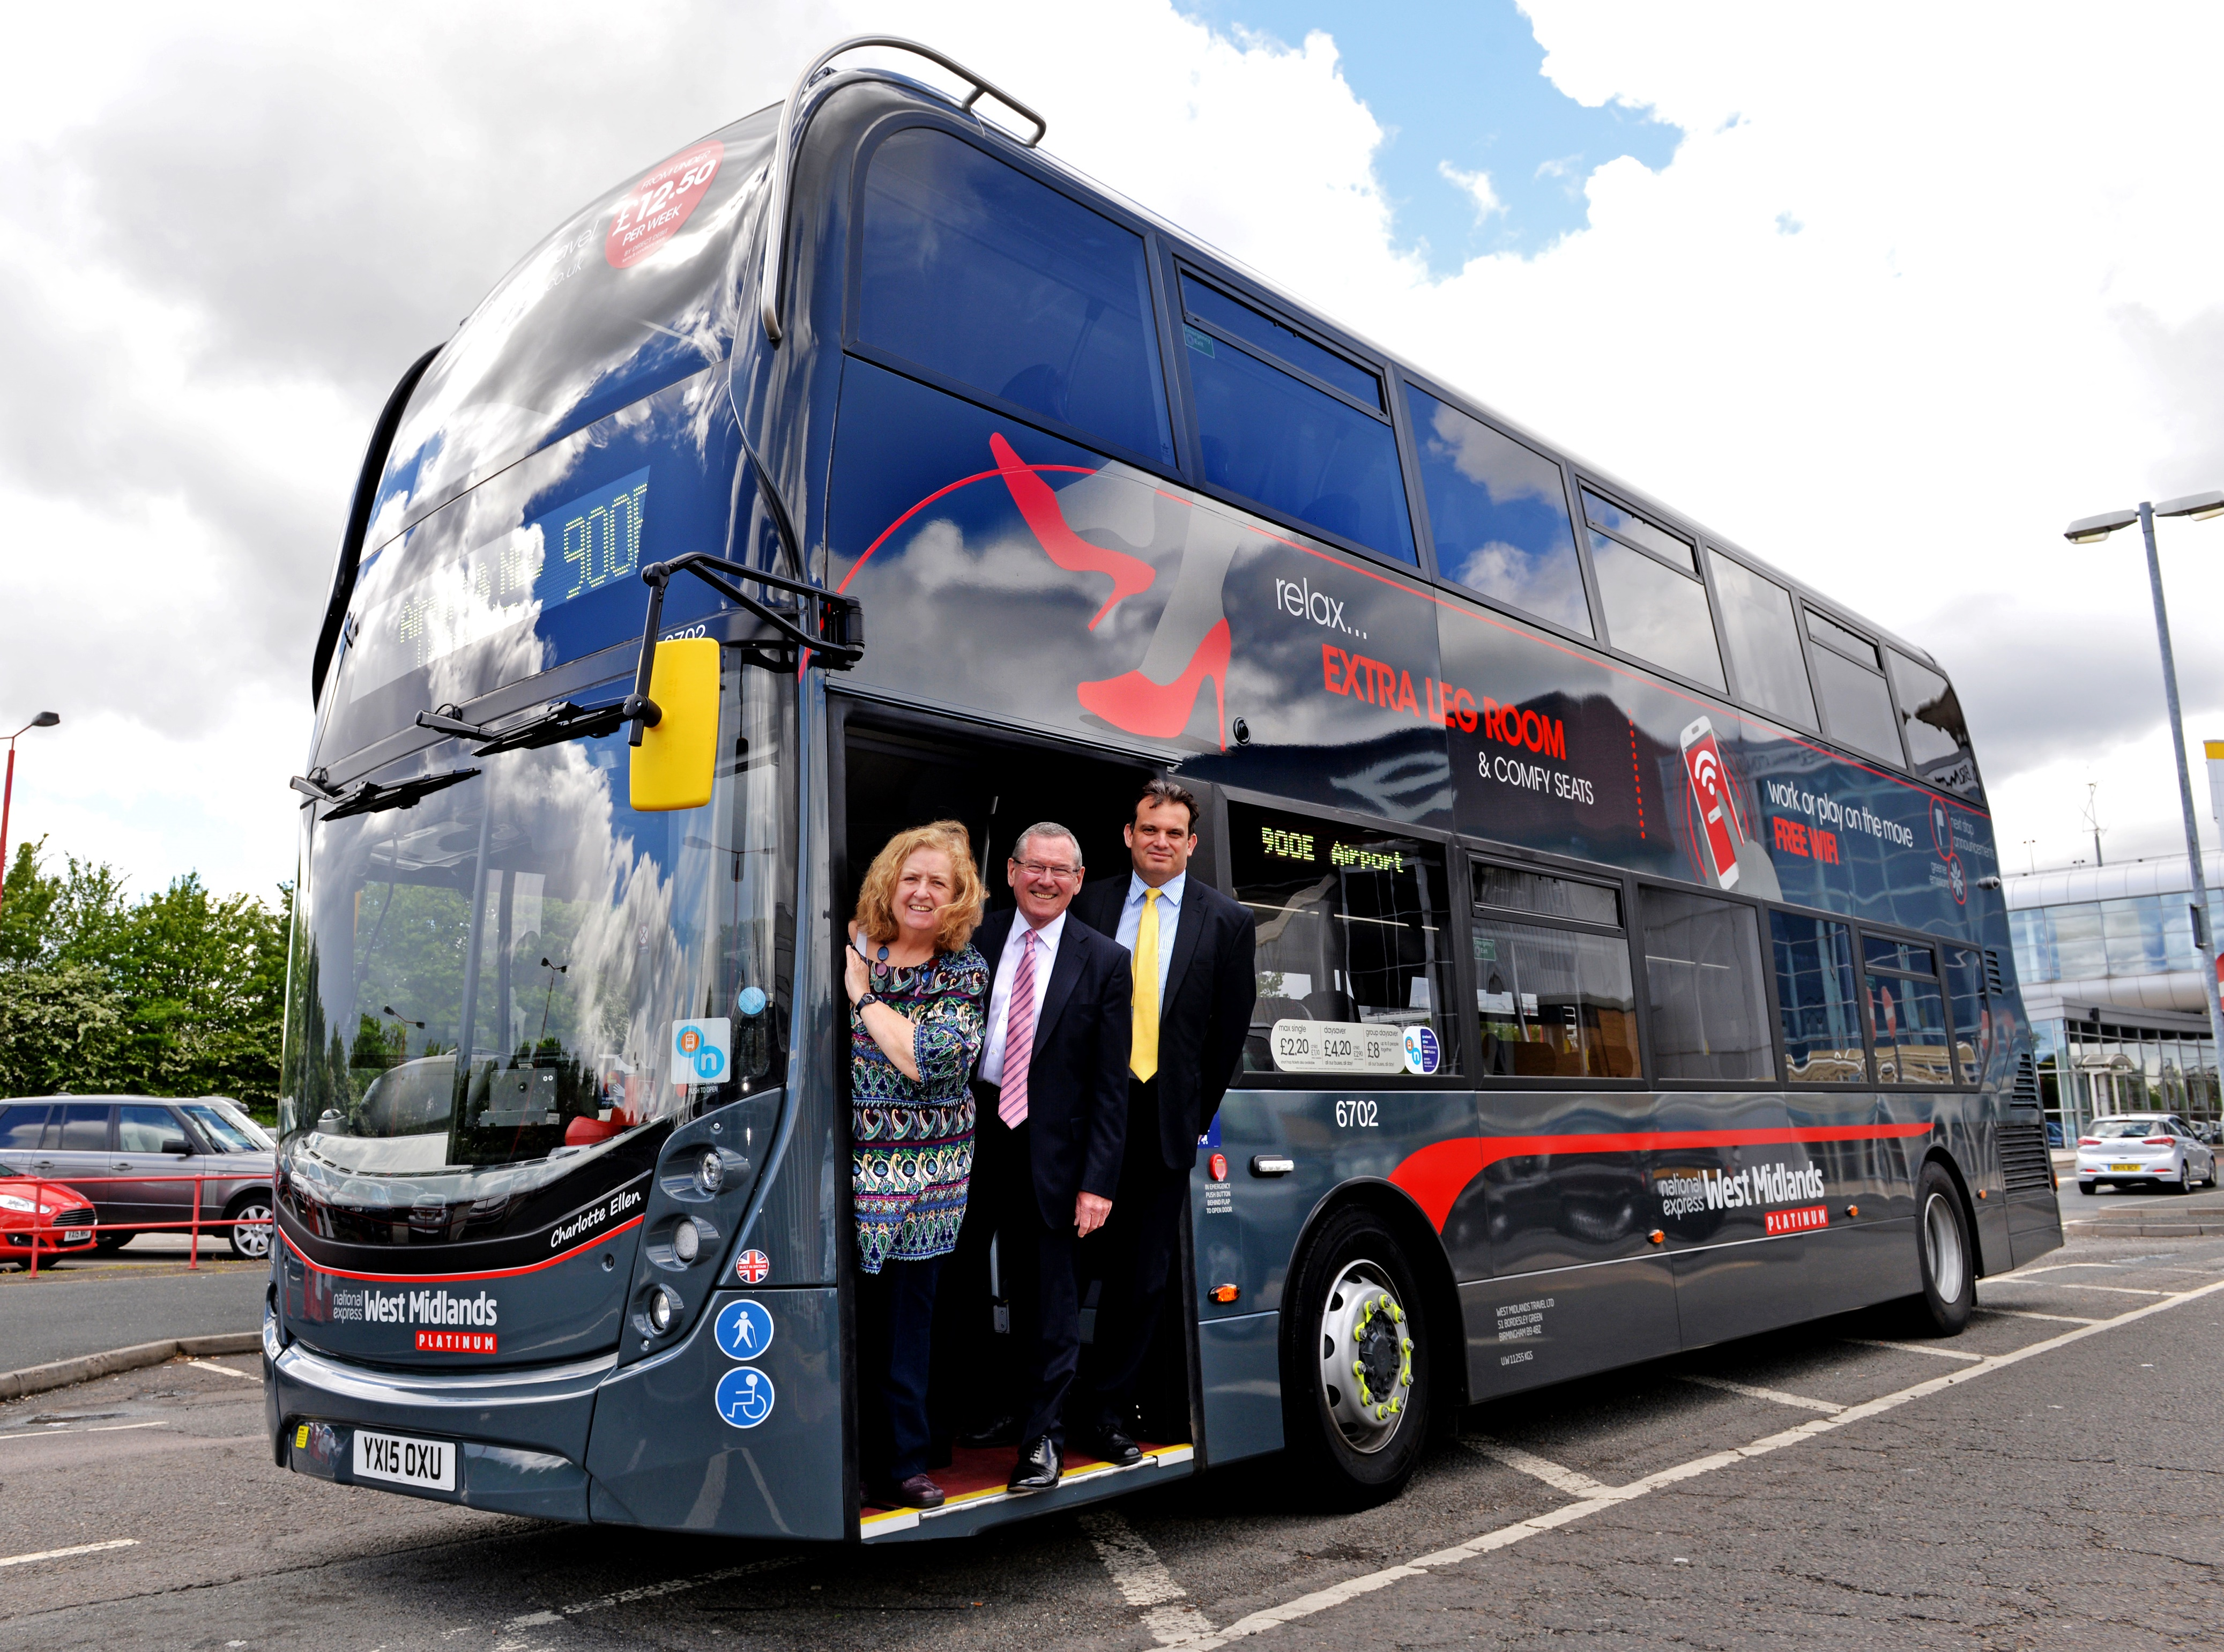 83 Million Of Investment For West Midlands Bus P Engers Over Two Years Including The 300 New Buses It Also Includes More Real Time Information